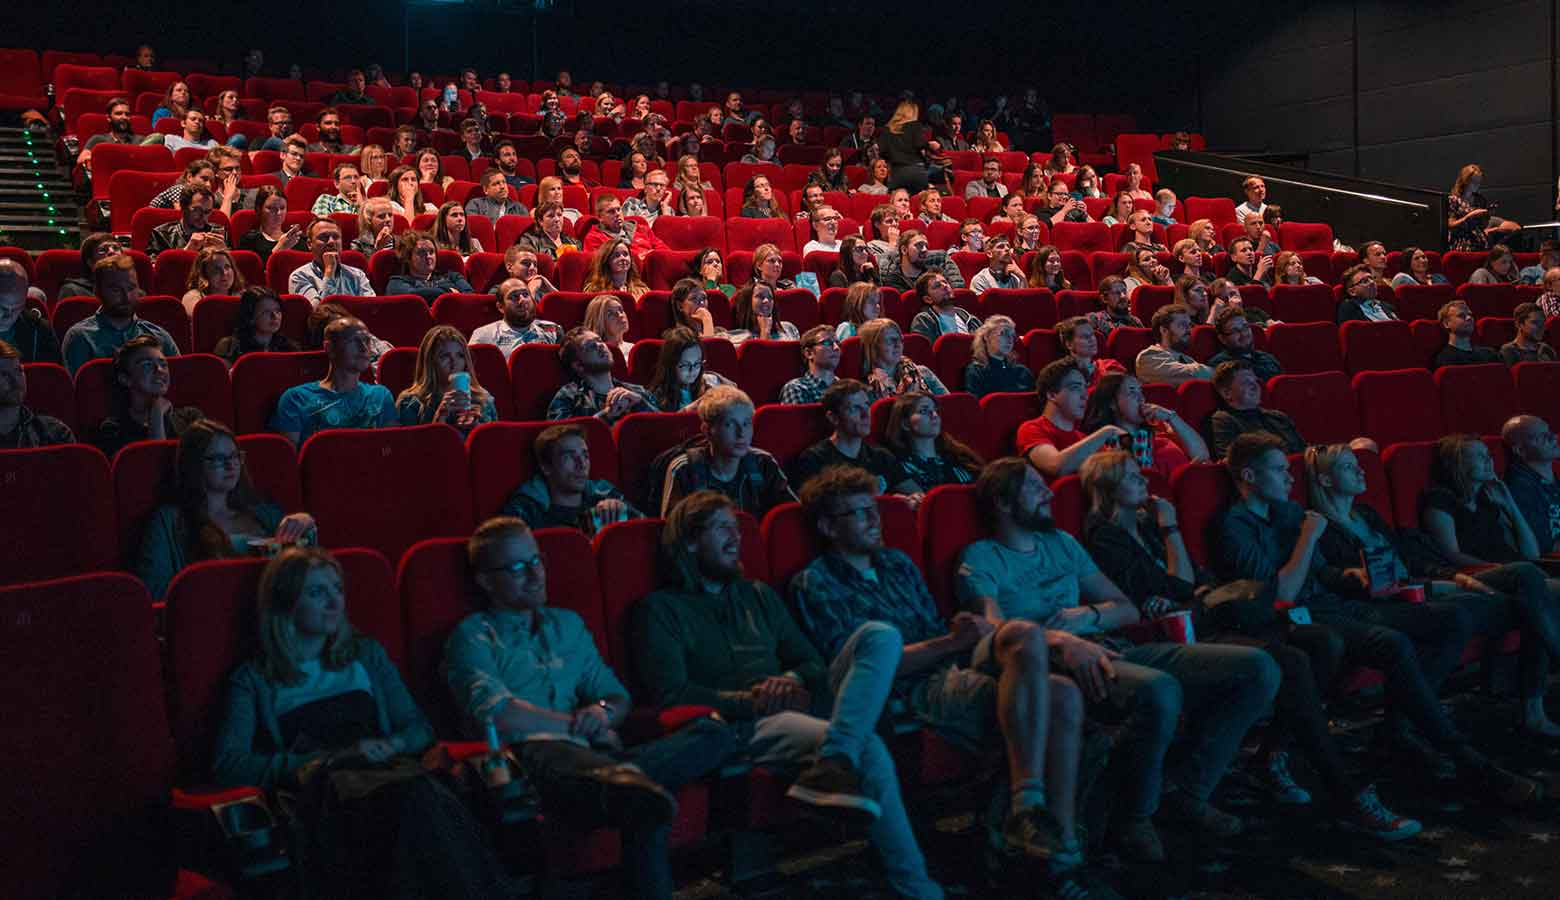 Image shows a crowd of people at the cinemas